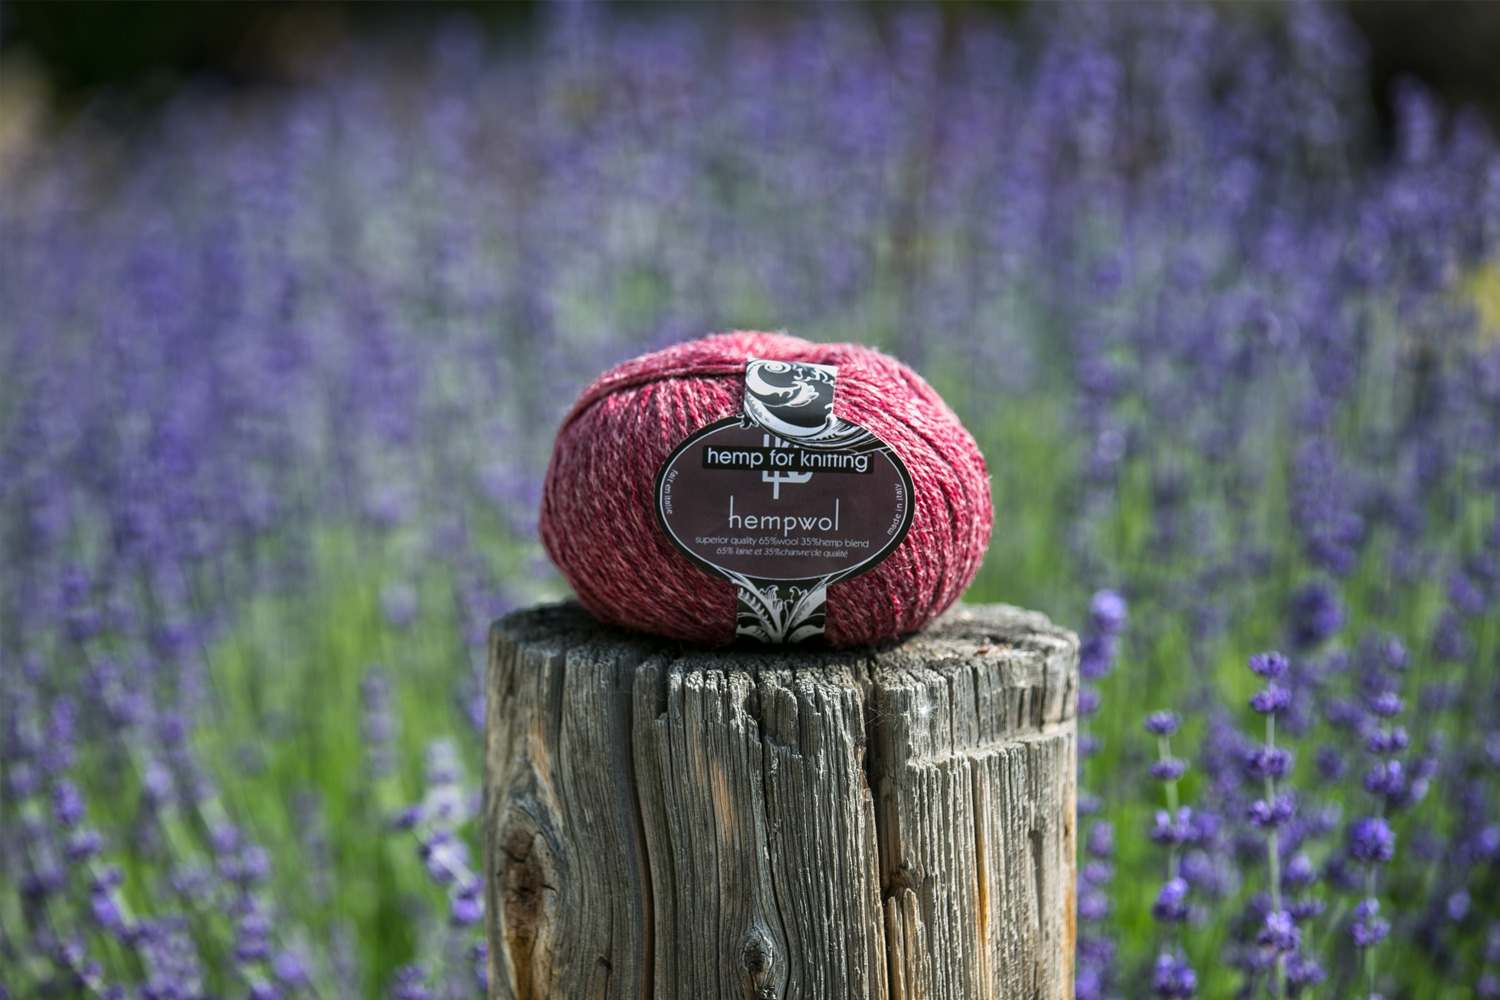 All things Purple Hemp - Drop in to Purple Hemp Co in Summerland and check out our hemp products, natural foods, natural skin products and herbs for healing.